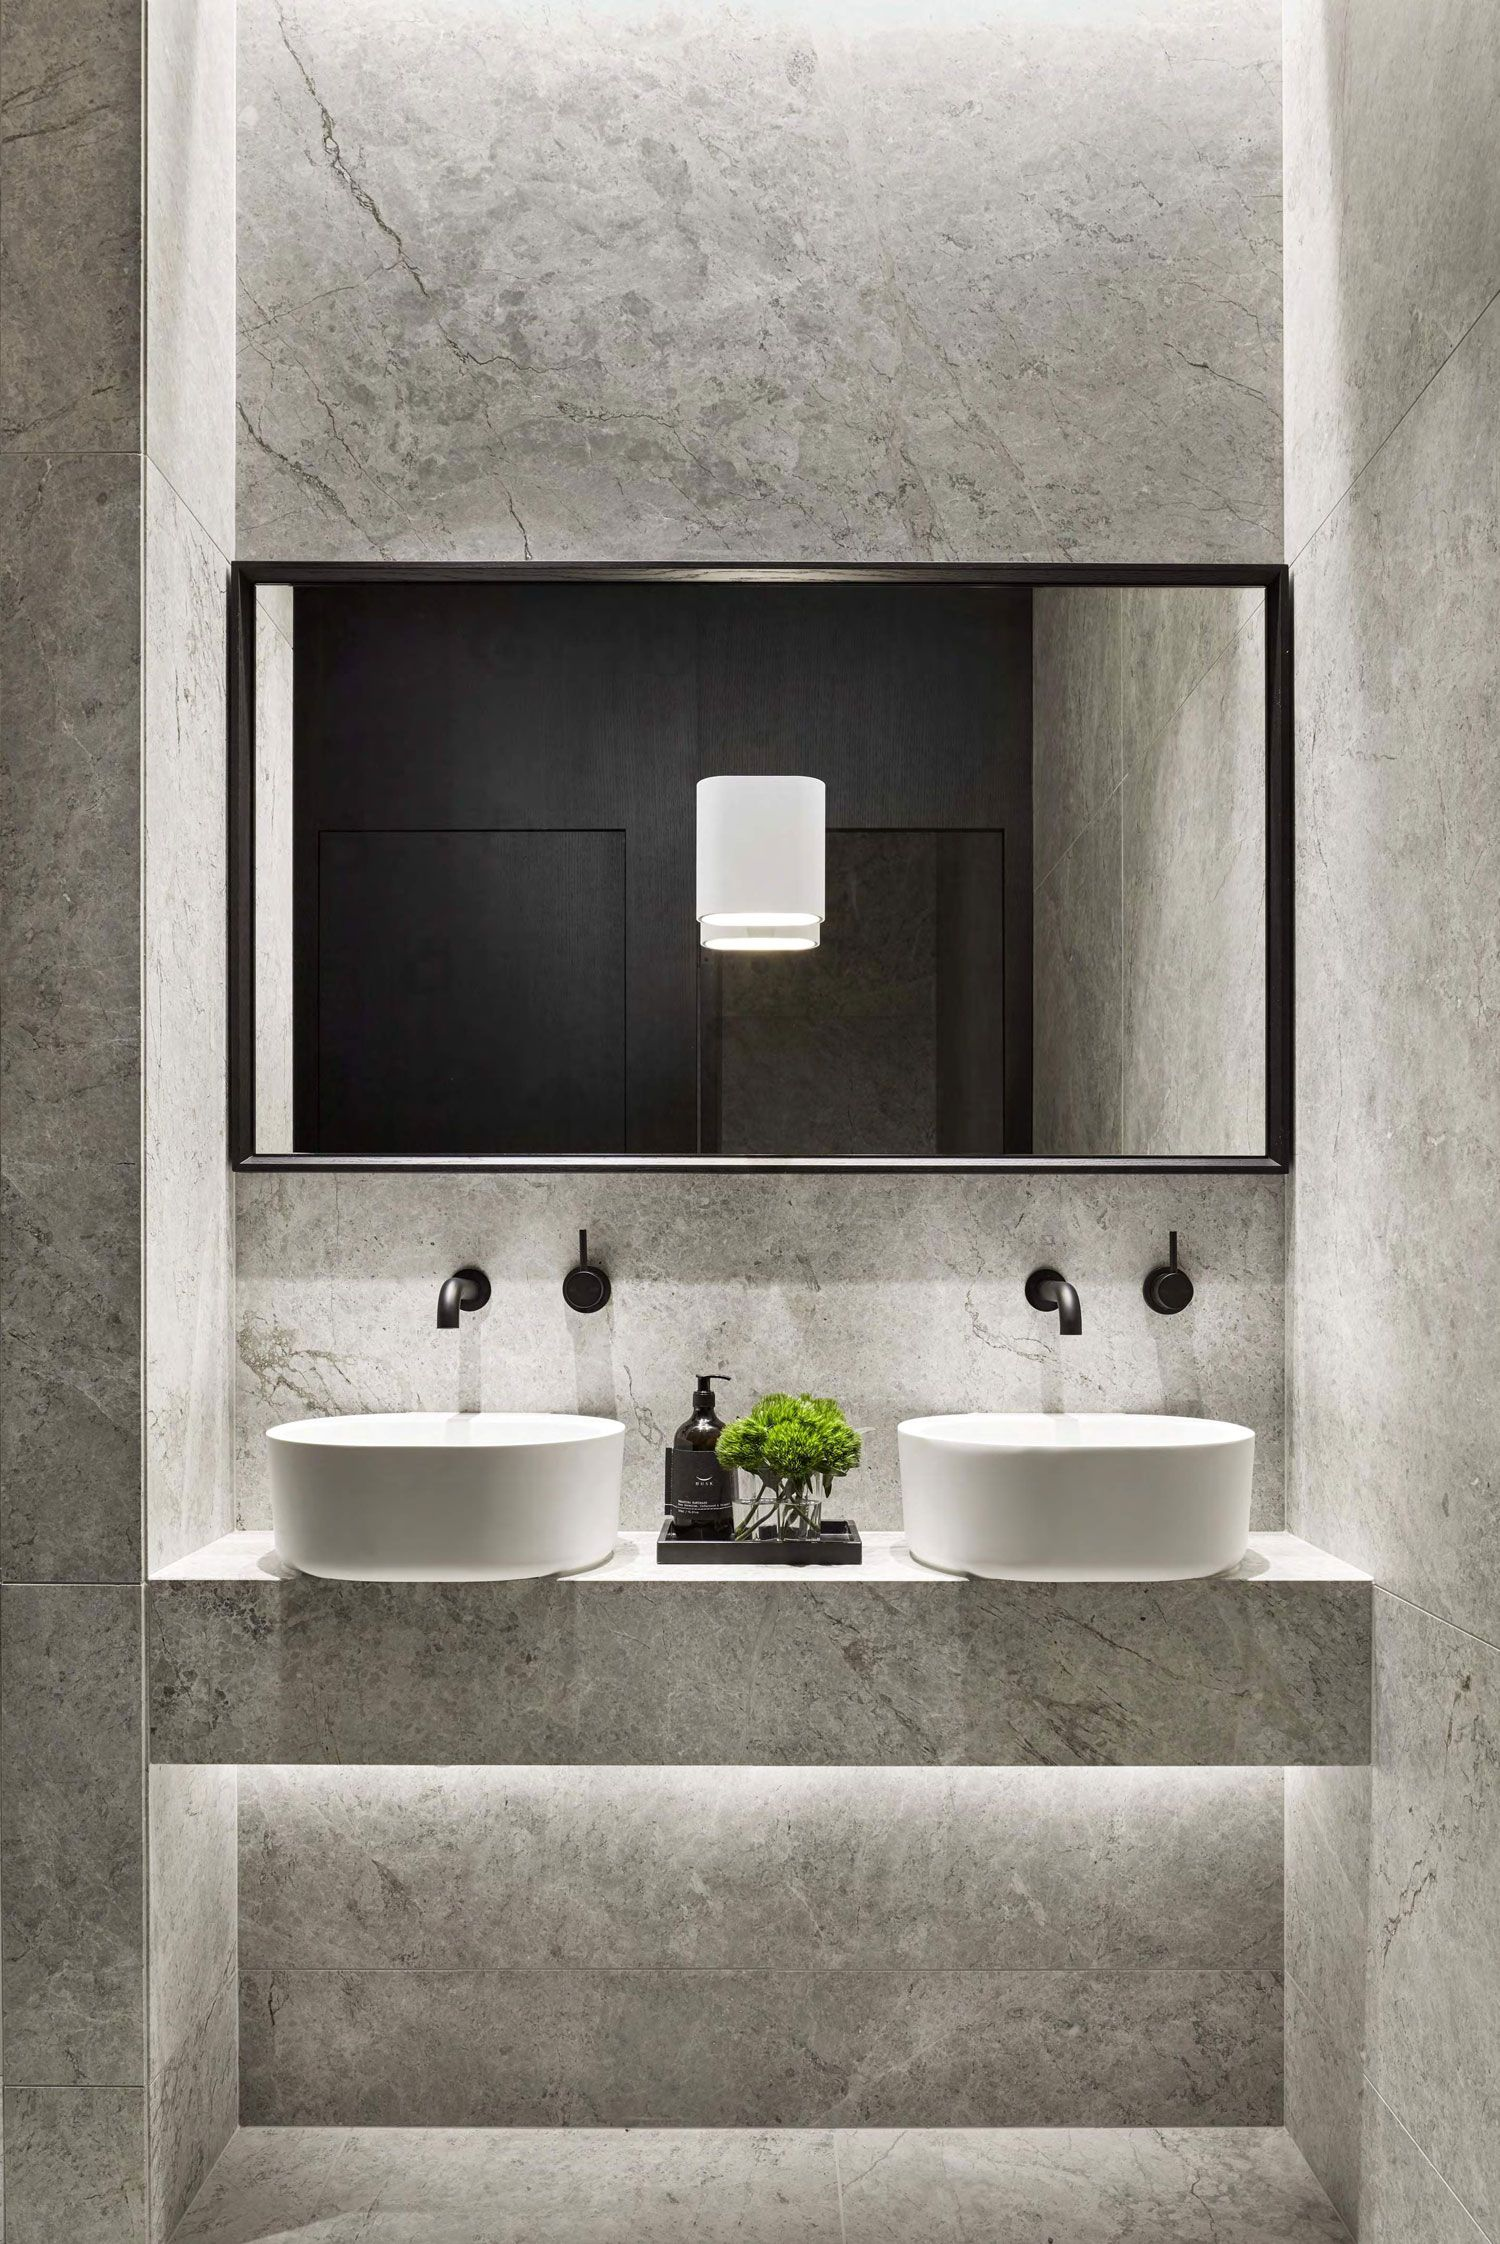 Clean Simple Bath At Pdg Melbourne Head Office By Studio Tate Yellowtrace